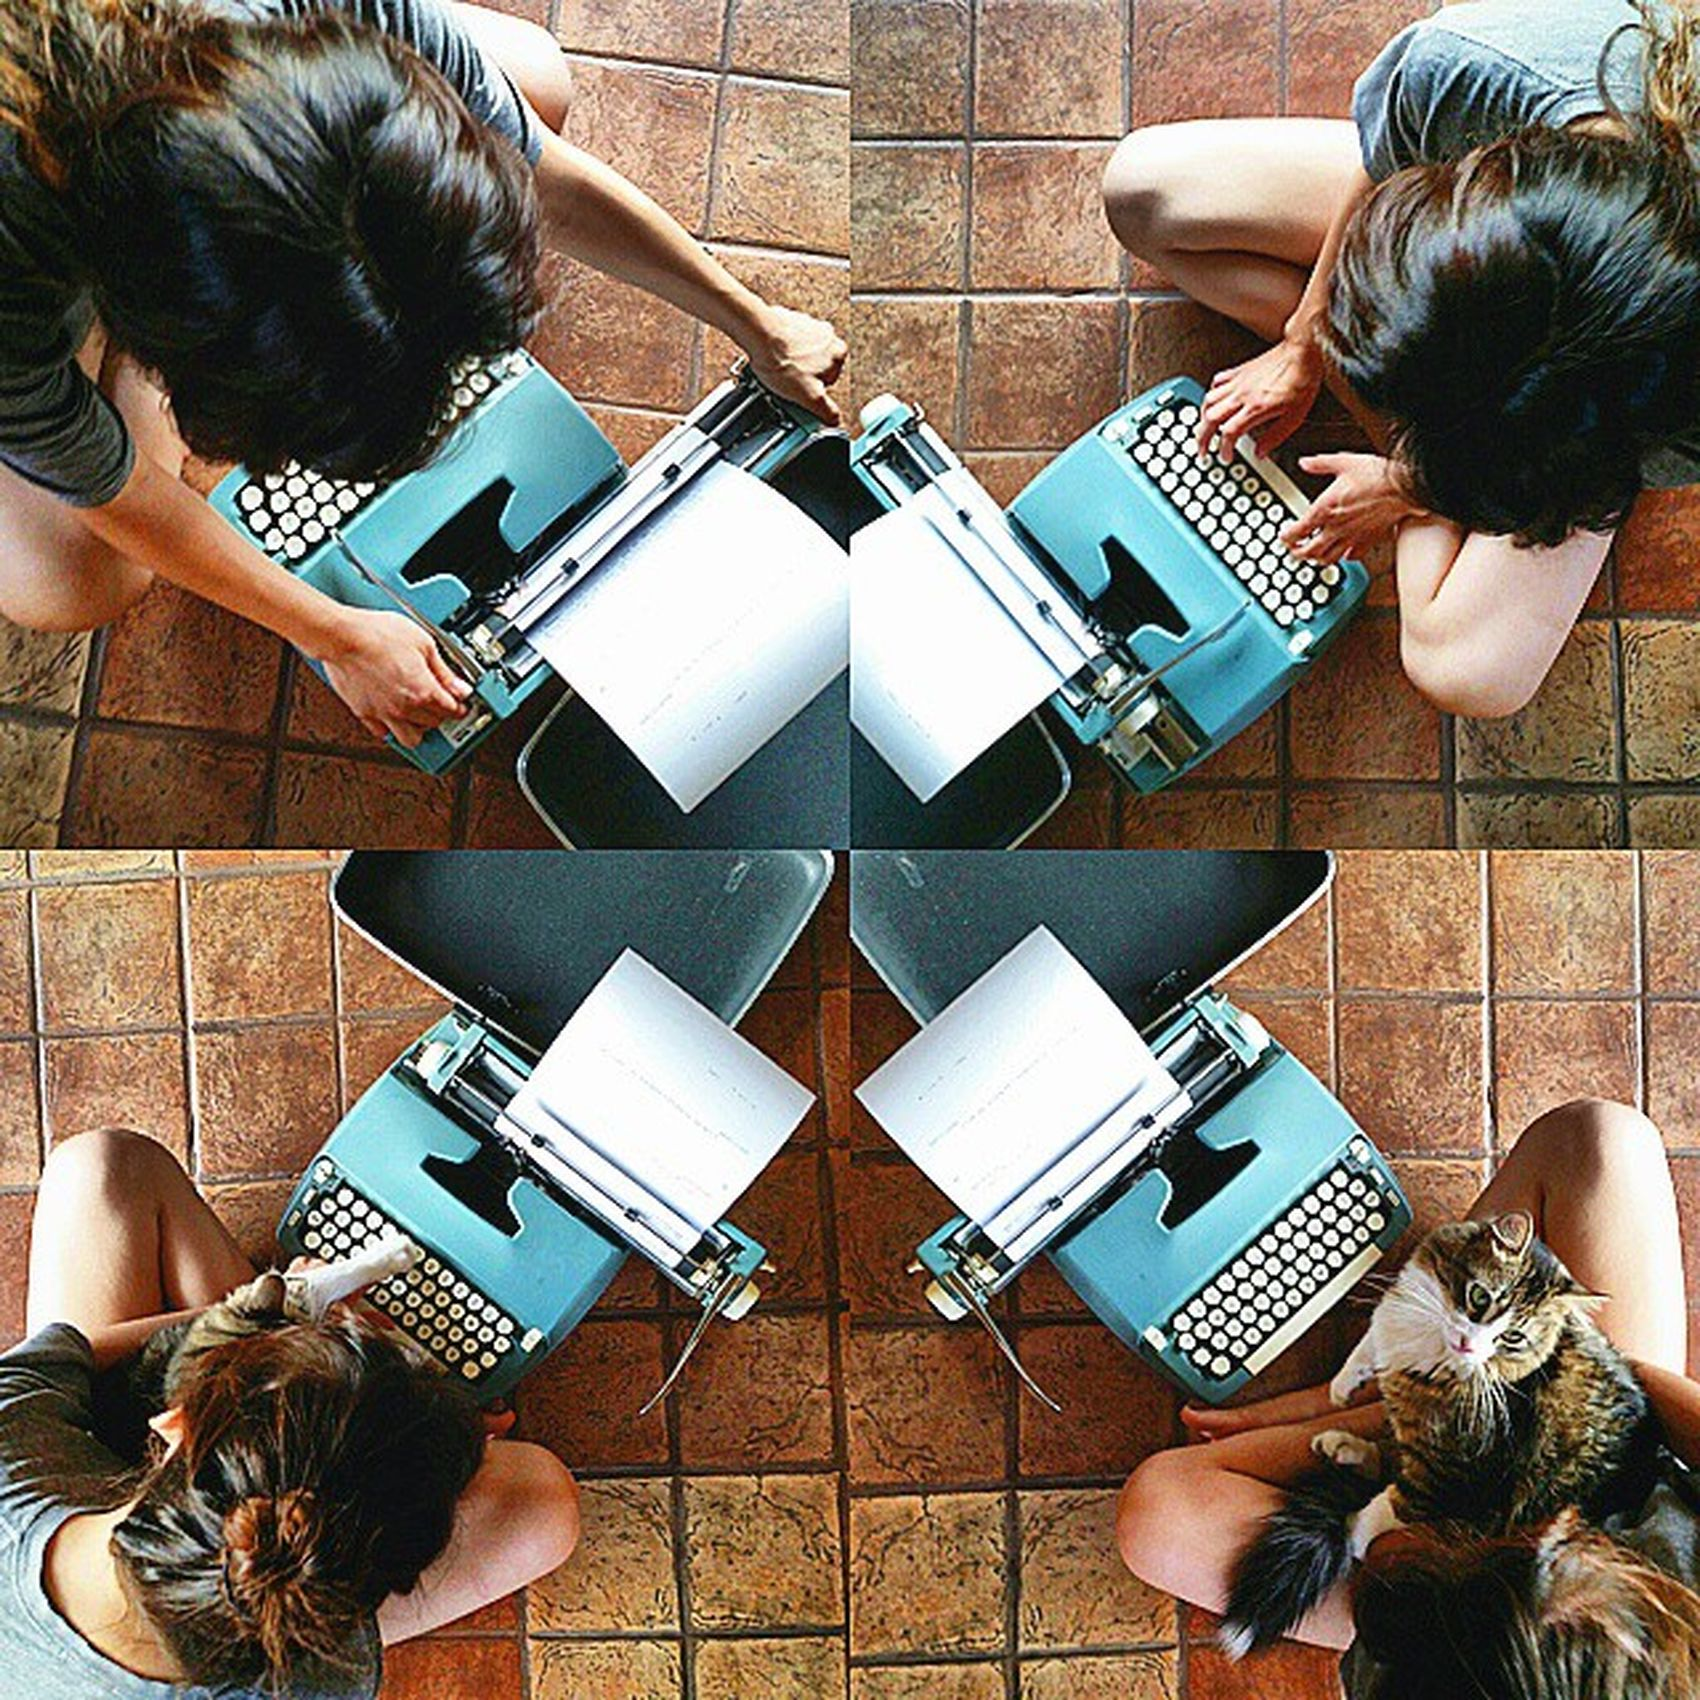 Morning-sesh⛅💗 Writing a love letter 💌to my cousin @victoriaramirez_ 😘 Along with my cat Indy😽. she was trying to touch the keys when I was typing. So, in the bottom left photo she held it with my finger,as I pushed the key down.😸 she's too adorbs Loveletters Typewriter Vintageisbetter Vscocam